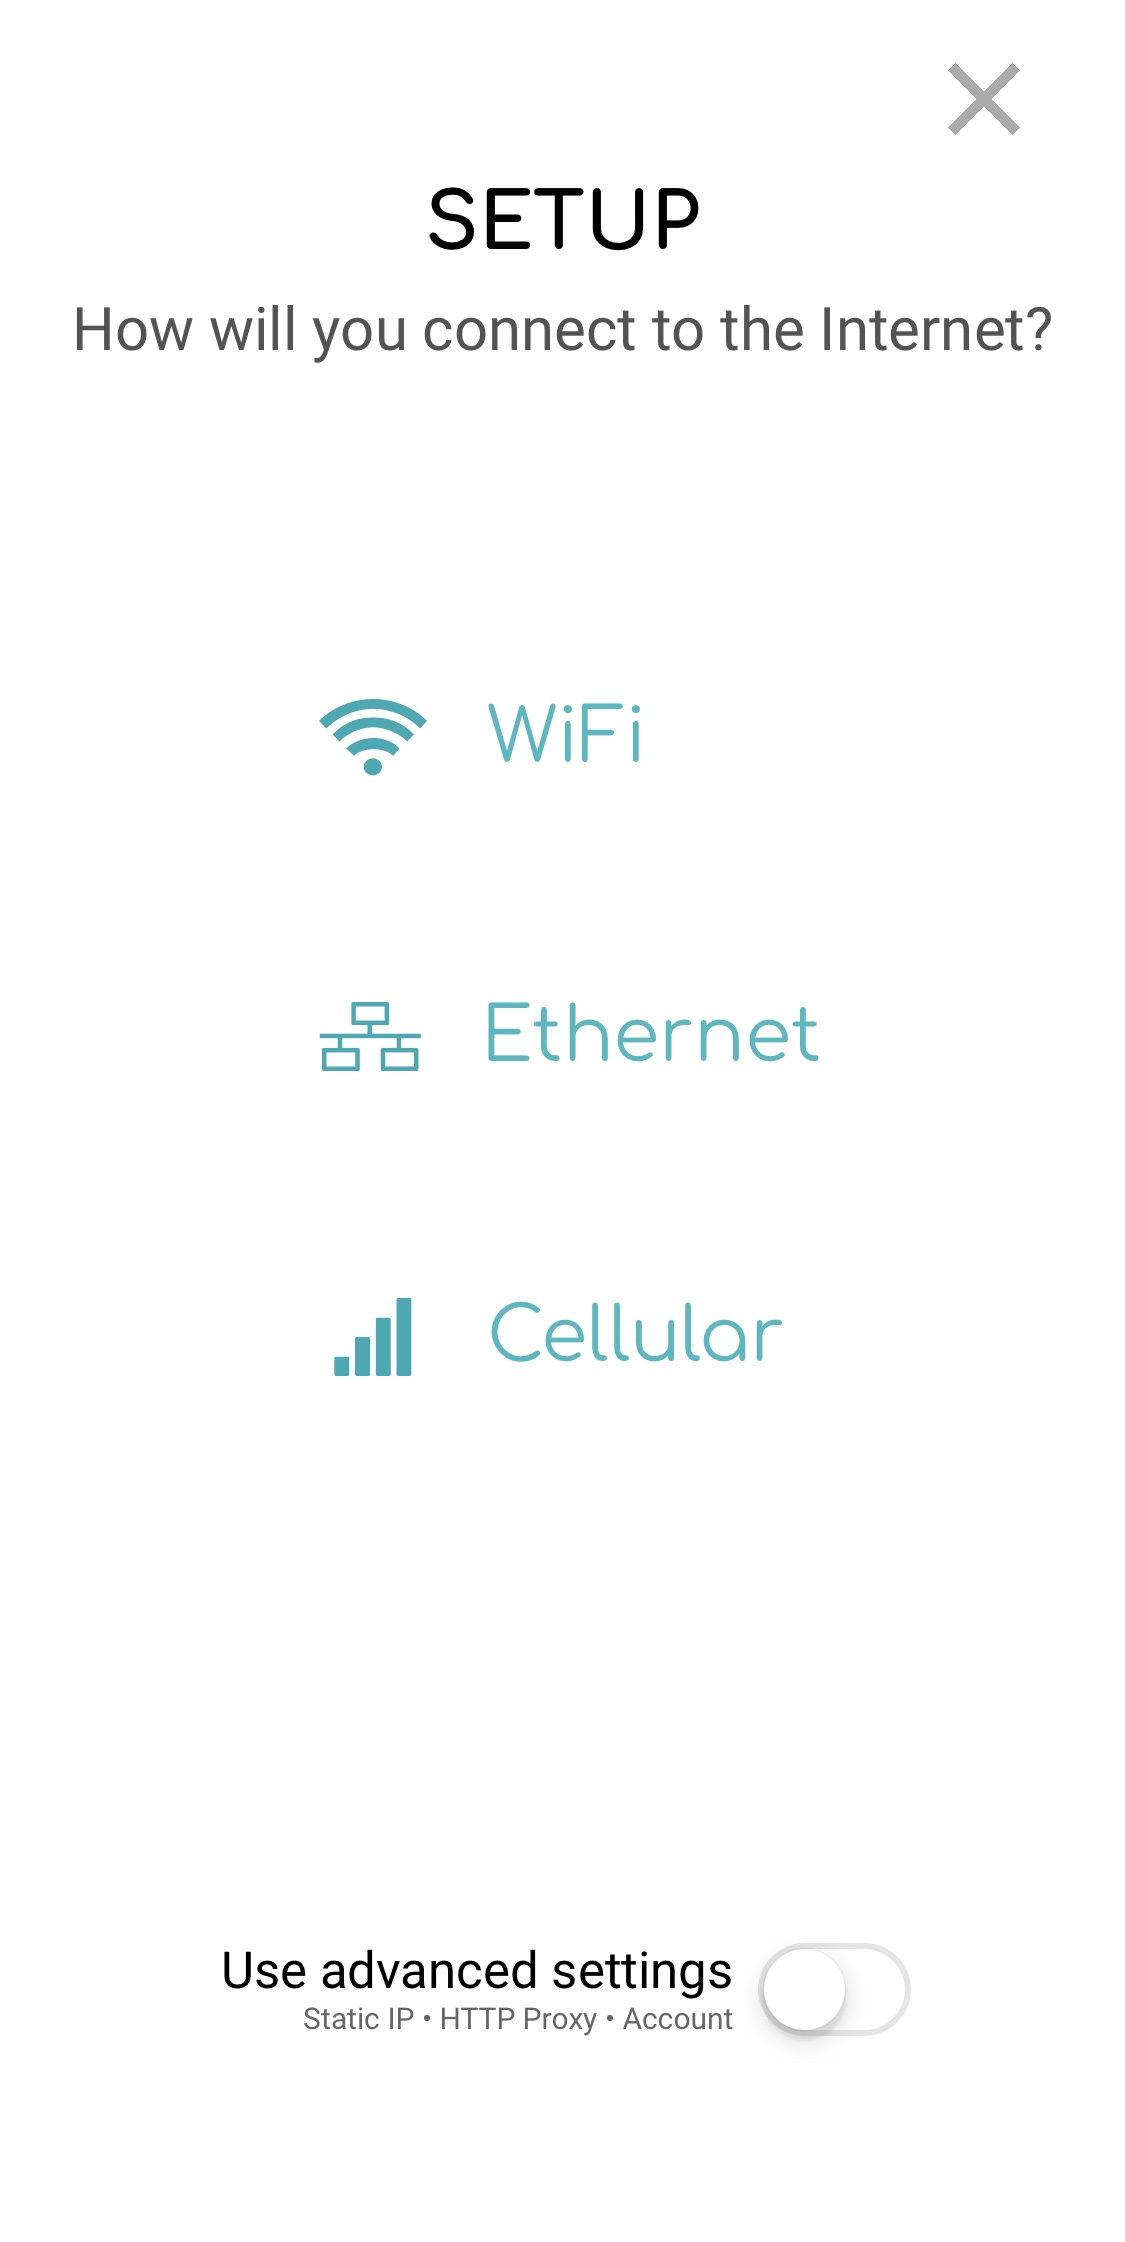 Select WiFi to activate a wireless device